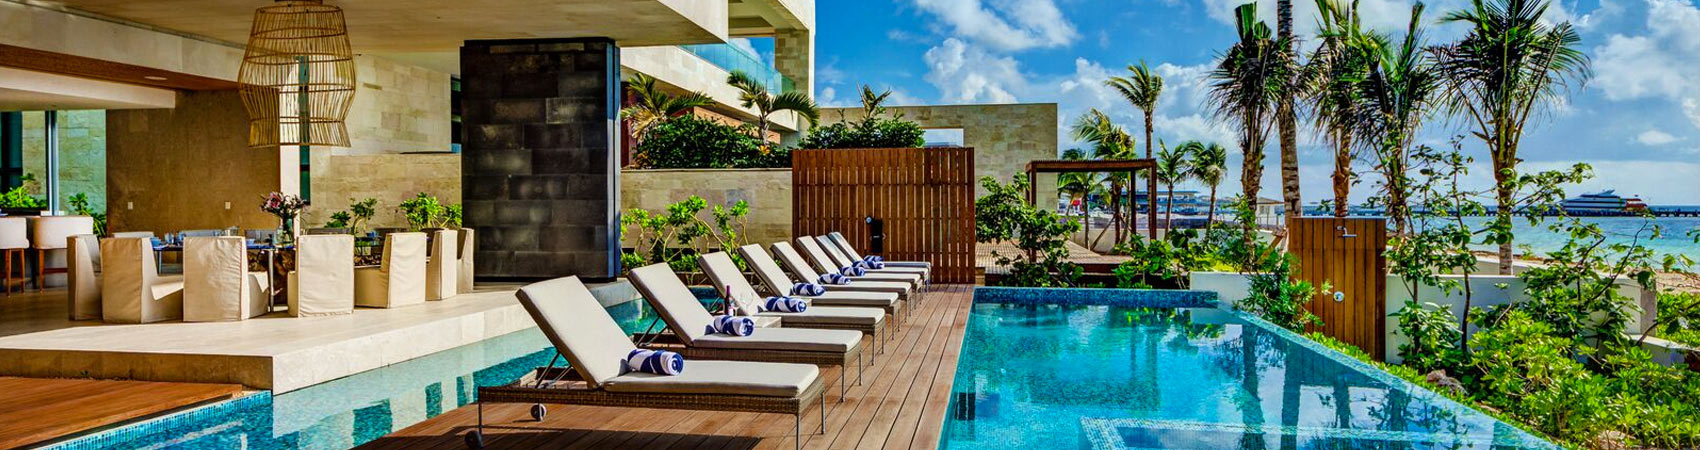 Riviera Maya Luxury Villas